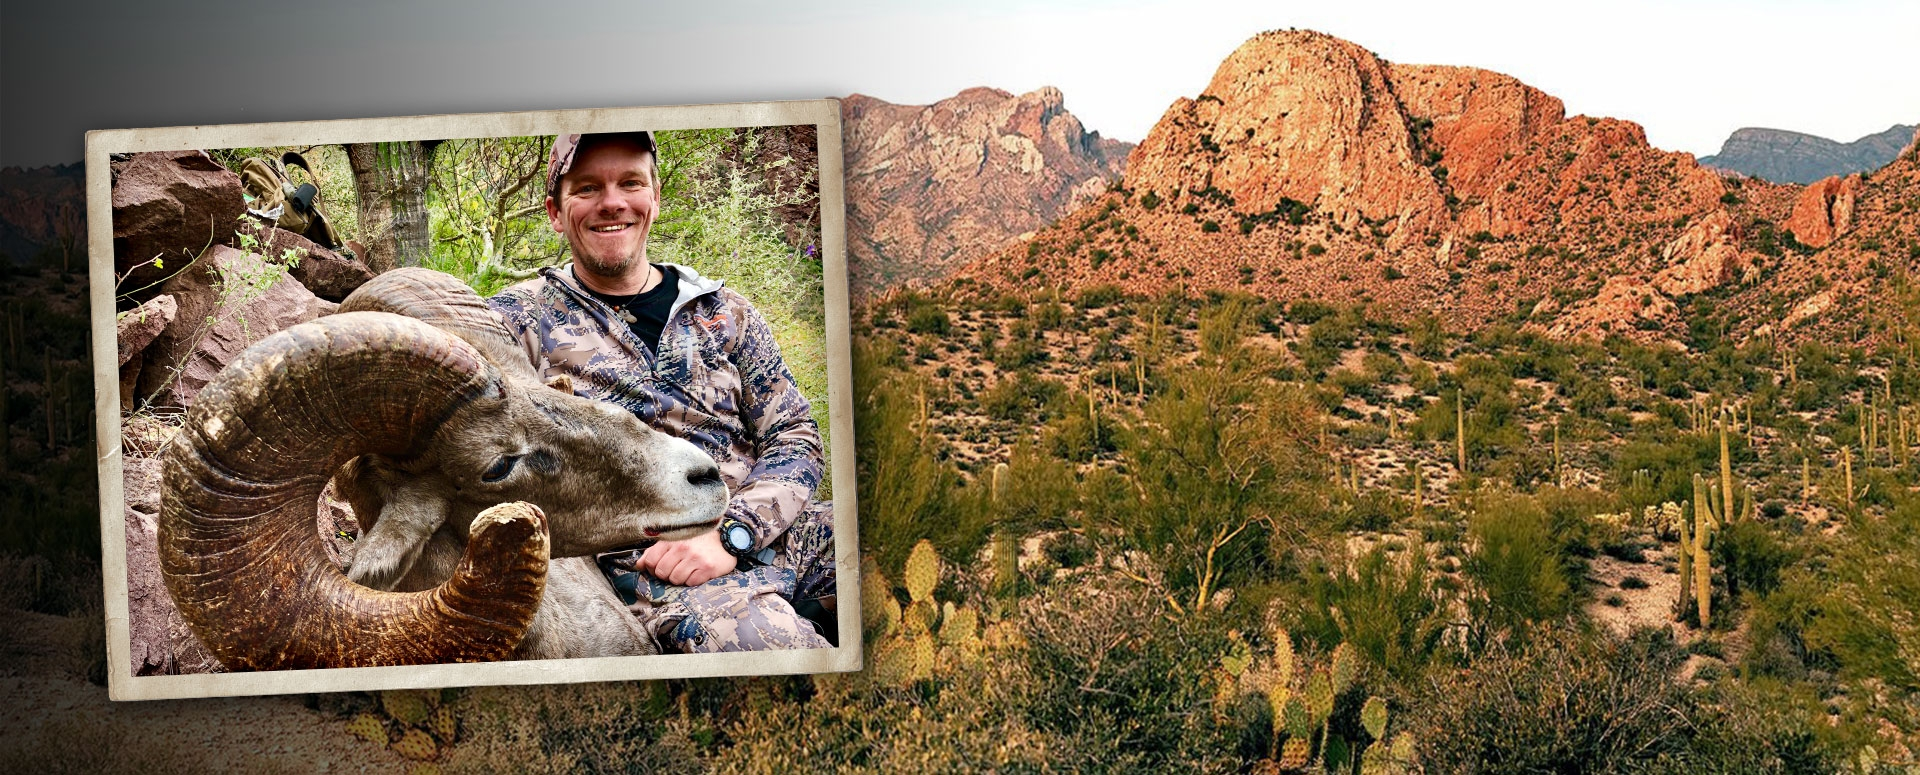 Desert Sheep Hunts Mexico | Bighorn Sheep